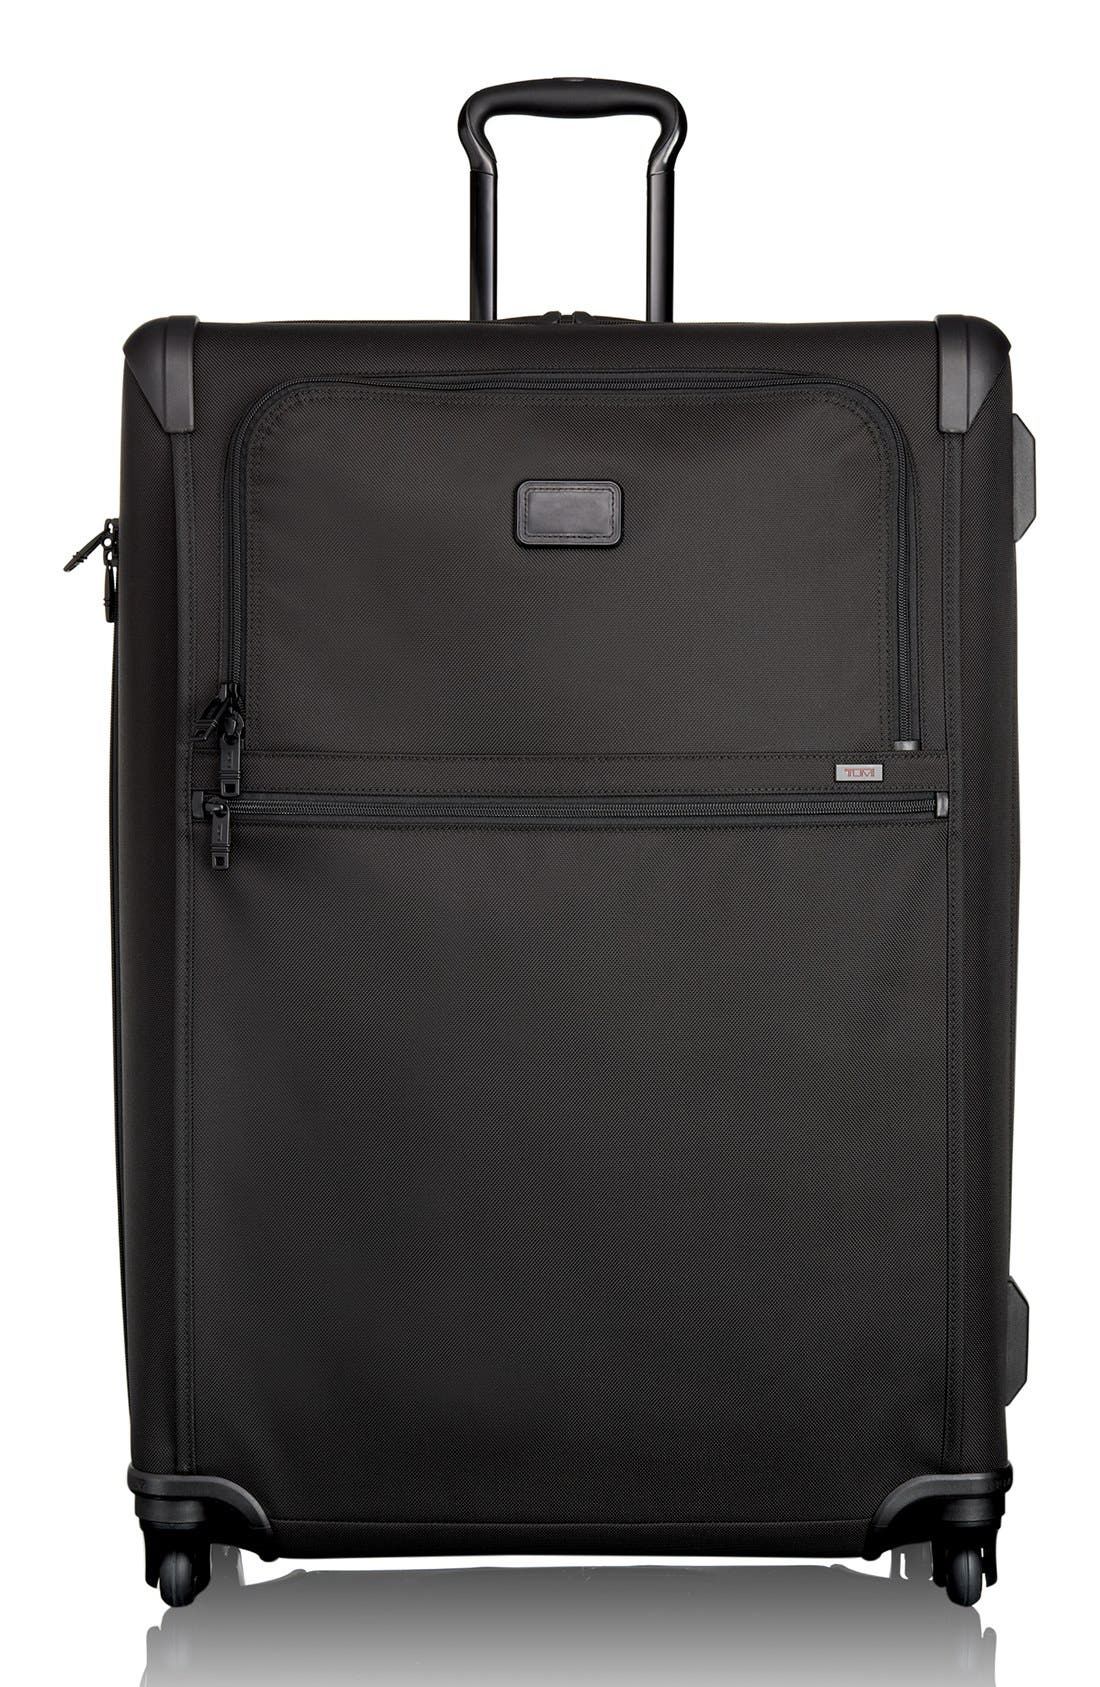 Tumi Backpacks ALPHA 2 31-INCH EXTENDED TRIP PACKING CASE - BLACK